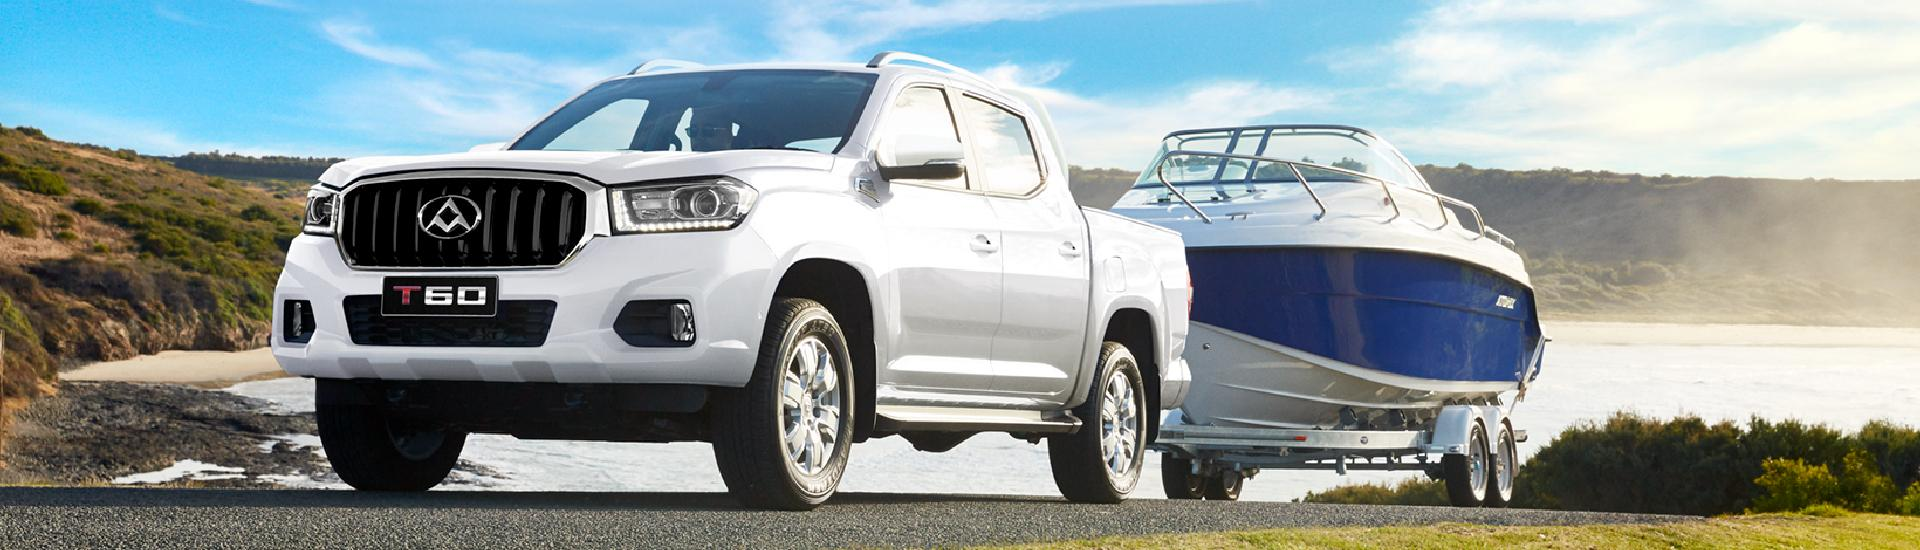 Ute - Find New Ute Cars For Sale - carsales.com.au